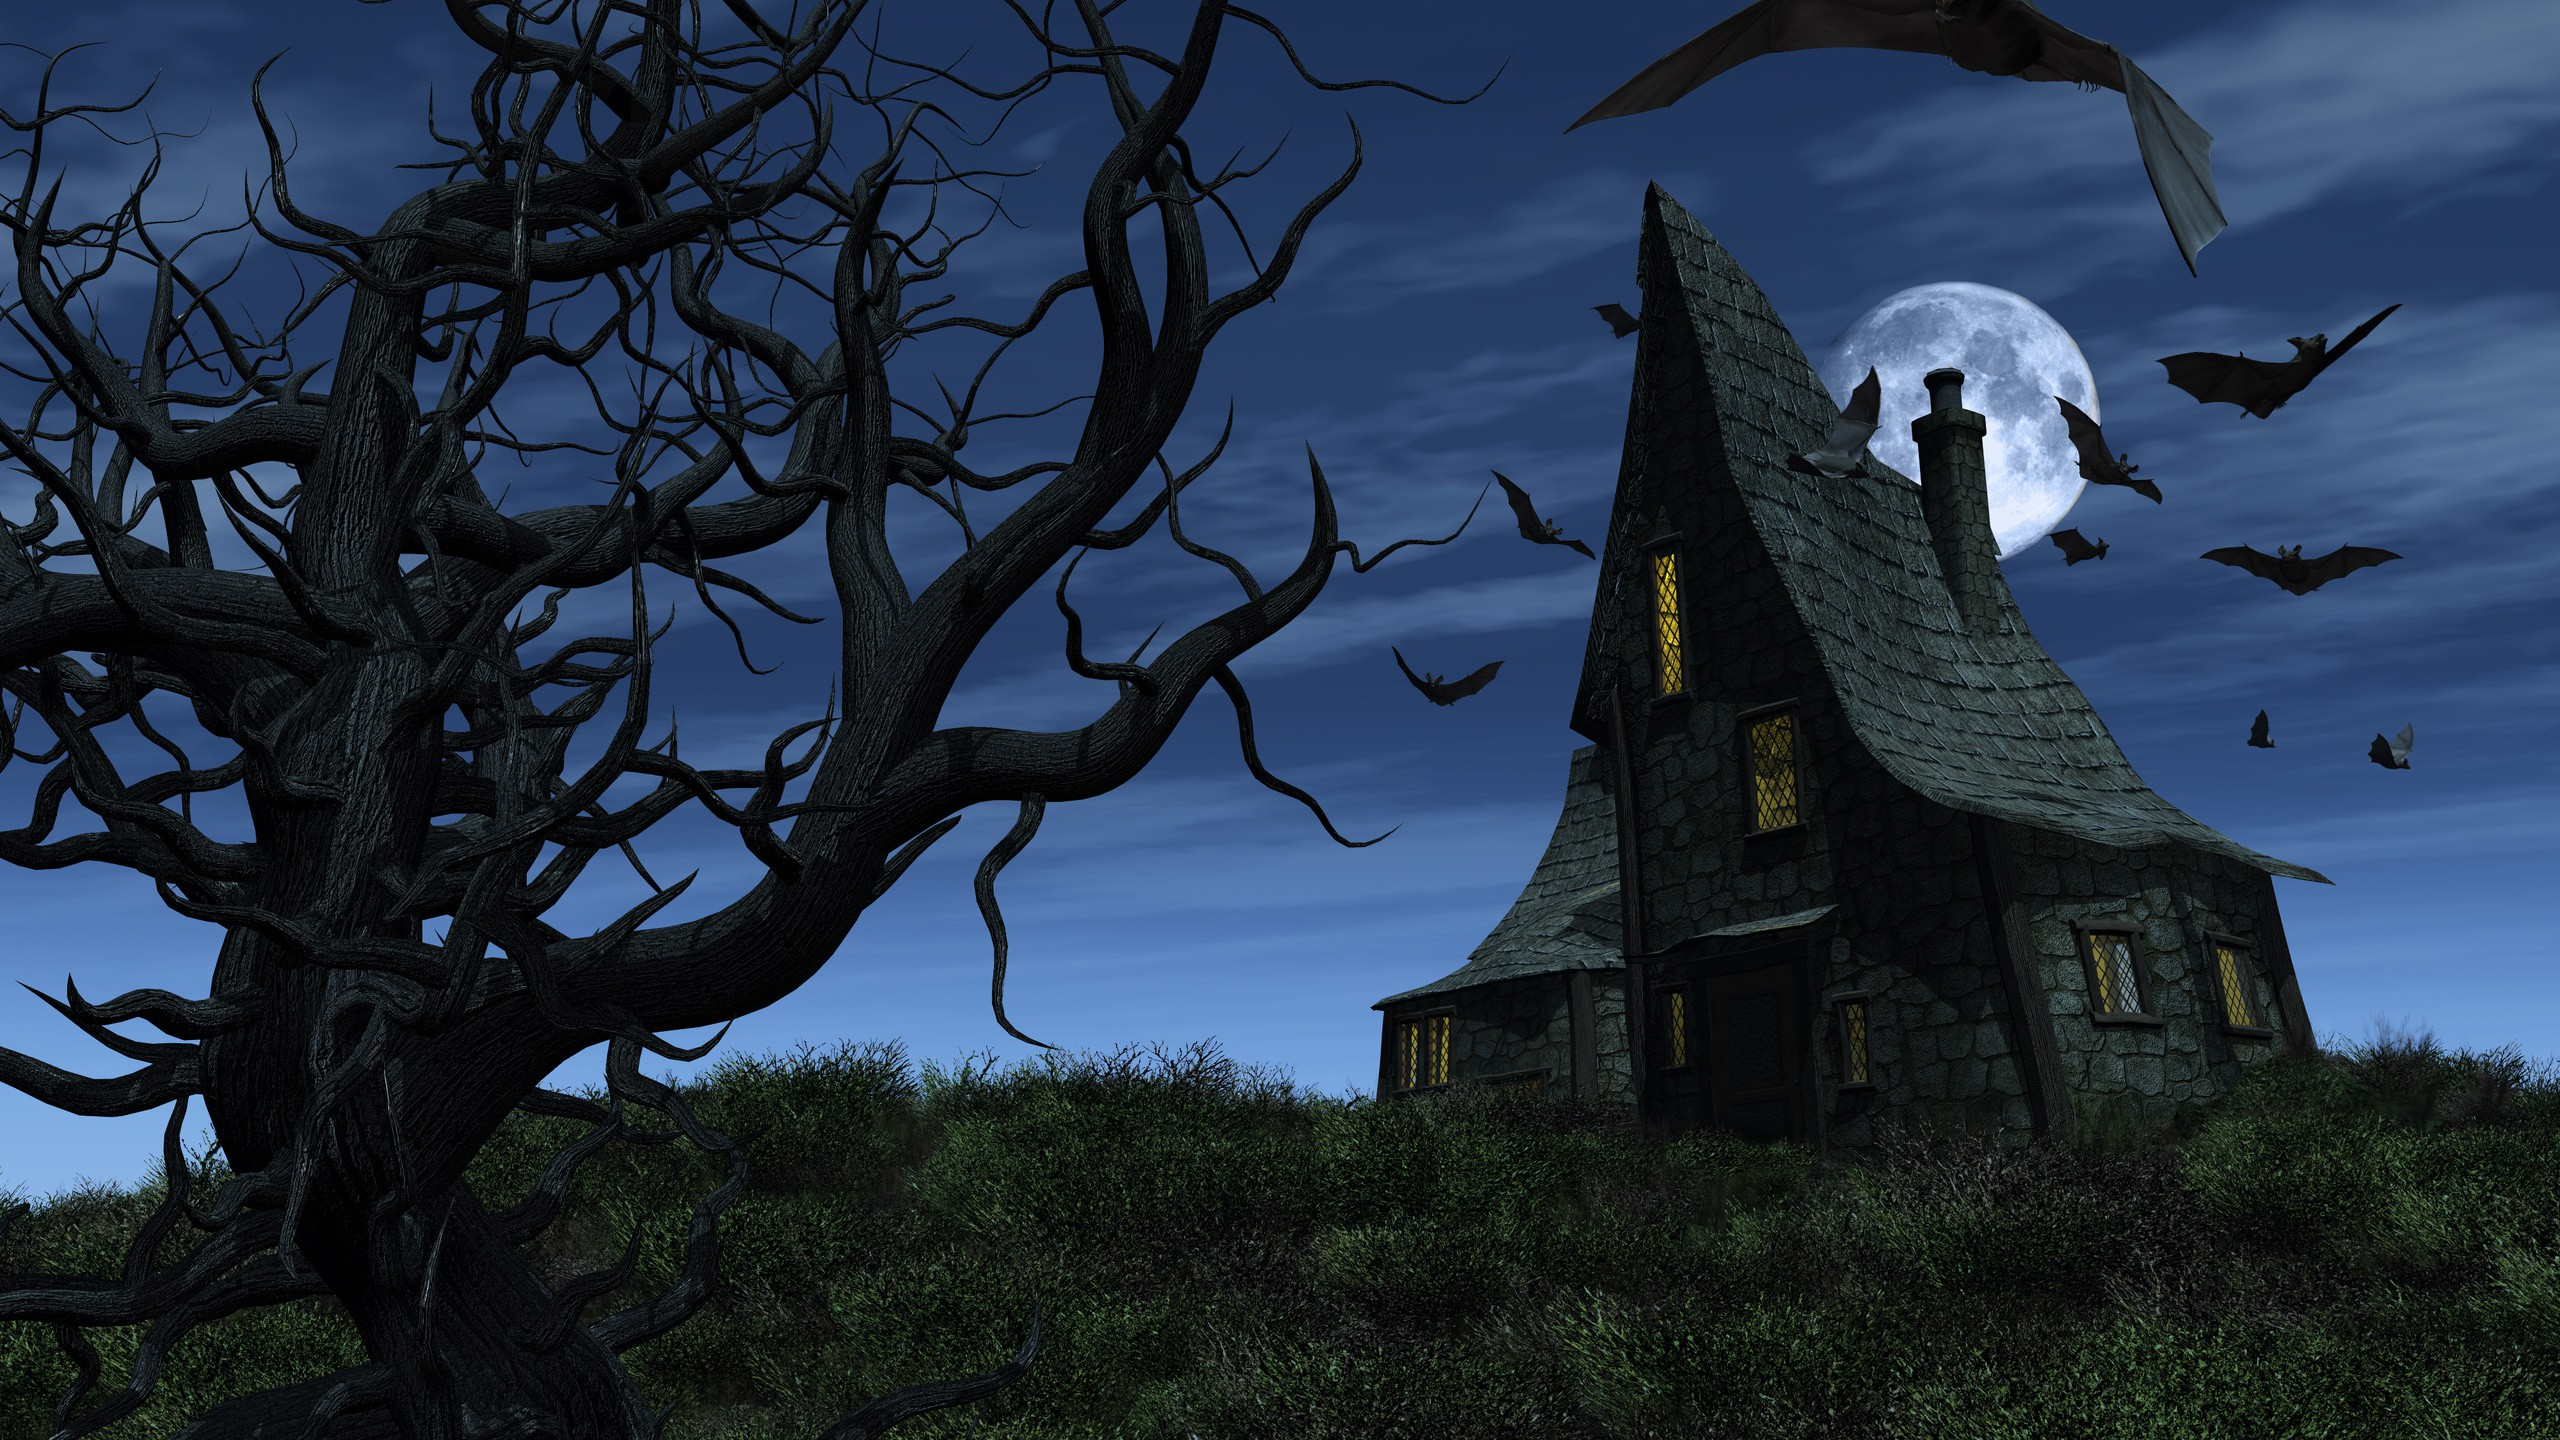 2K Full HD Haunted House 2560x1440 black,blue,green Image